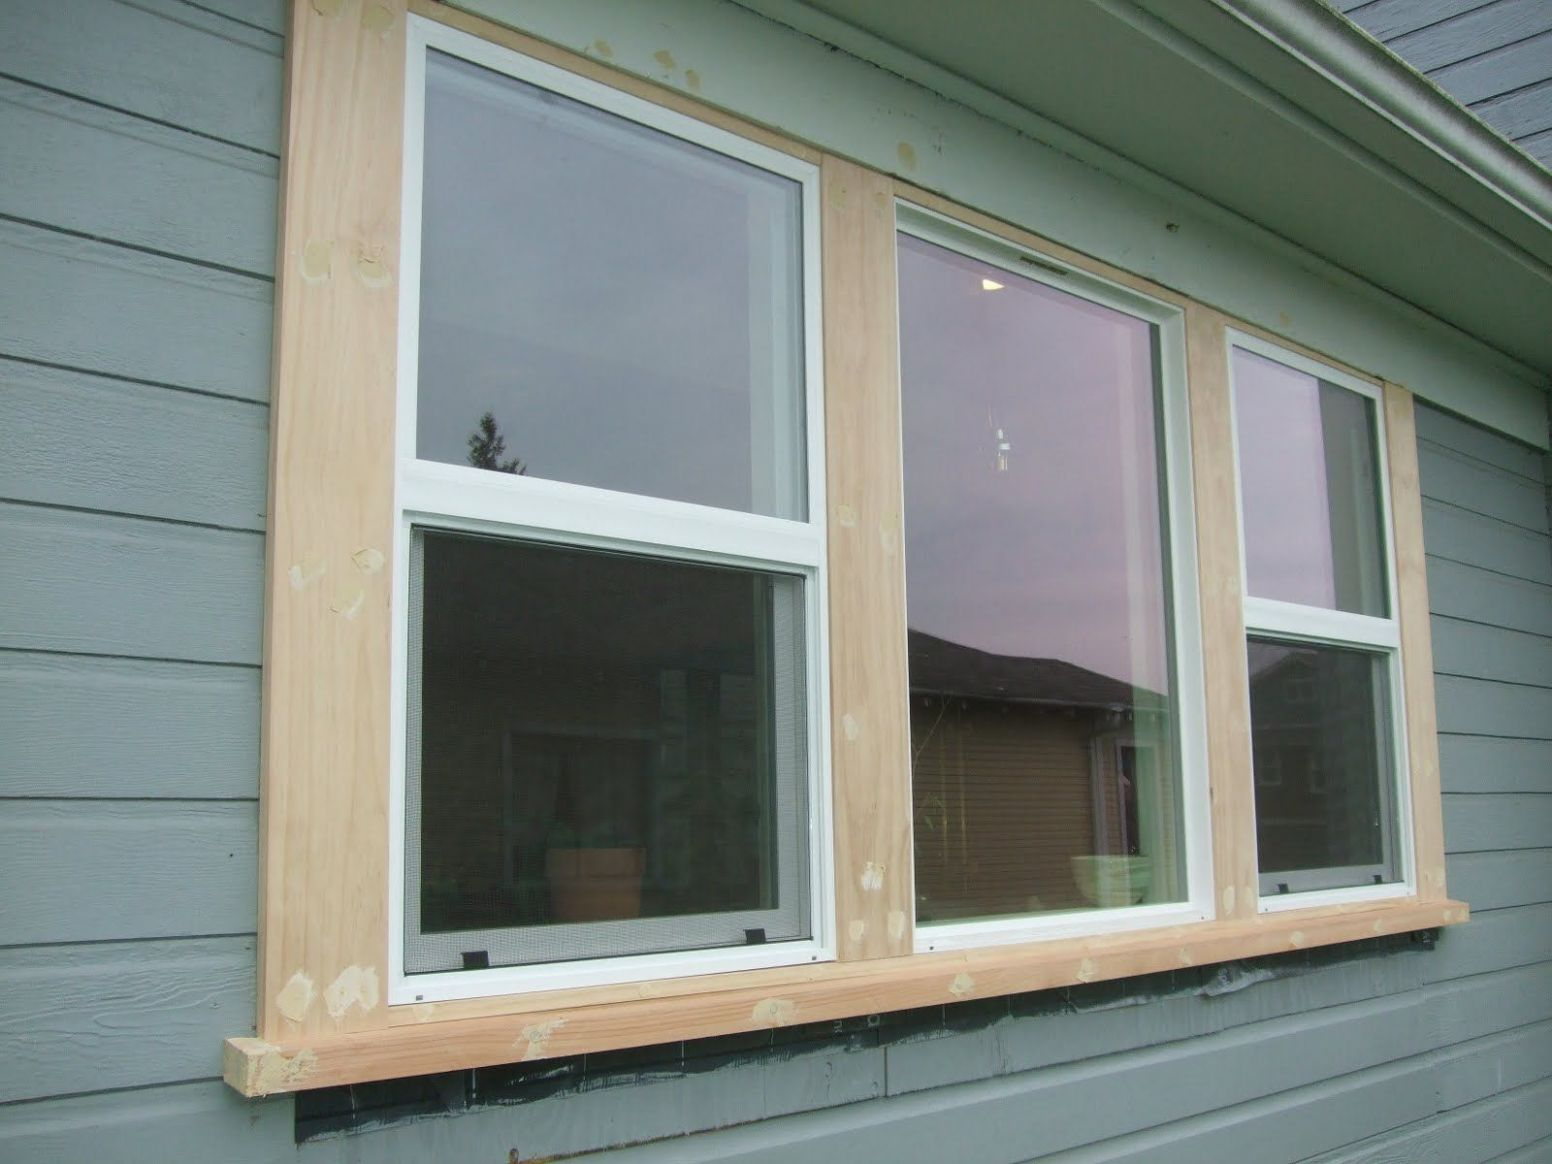 Outside Window Trim: Classic Finishing Idea for Perfect Home Plan ..